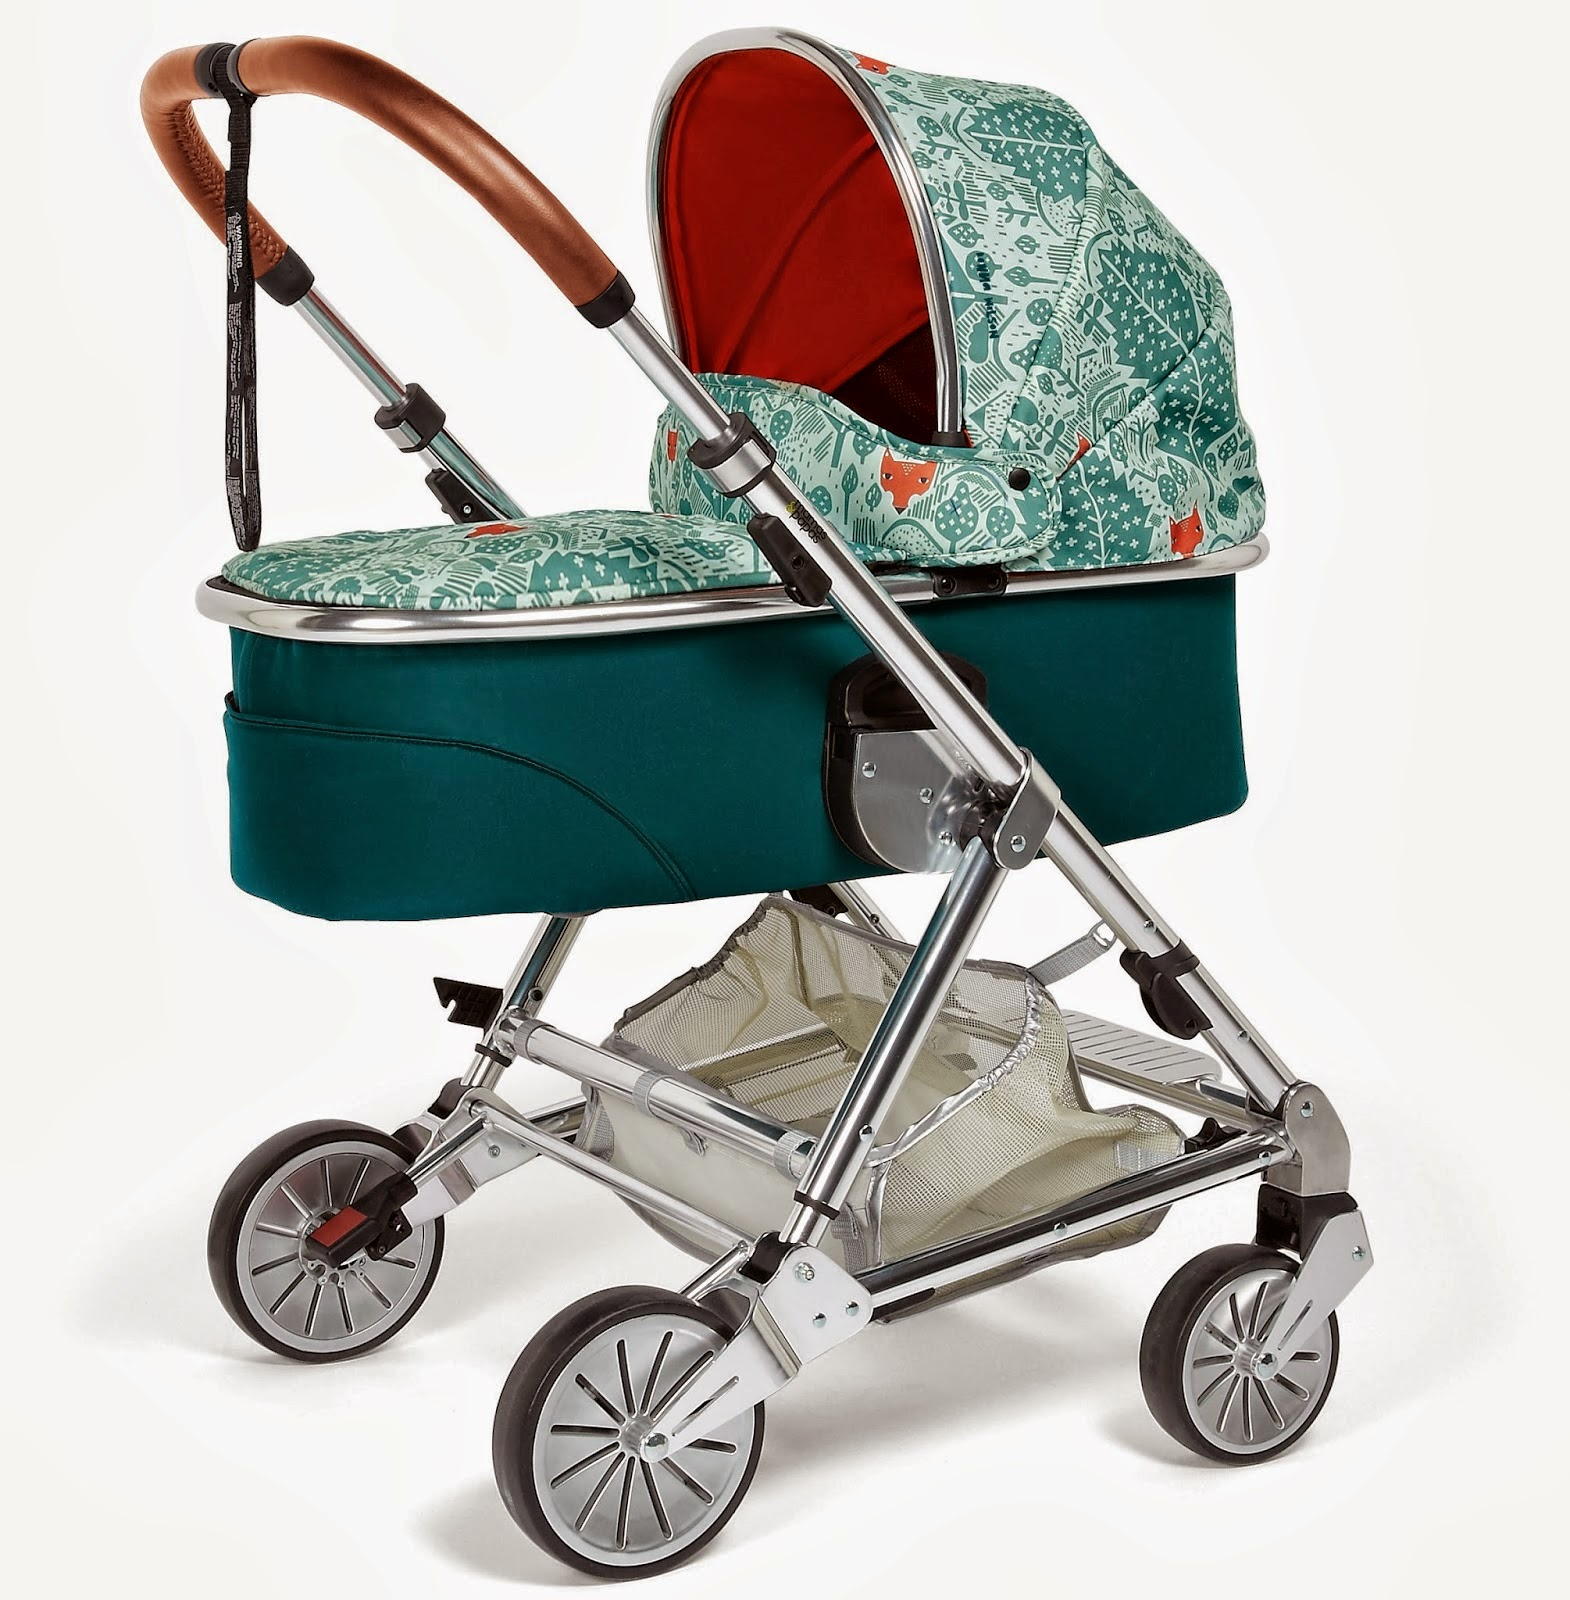 Best City Pushchairs Looking For Some Fashionable Pram Wheels Here You Go